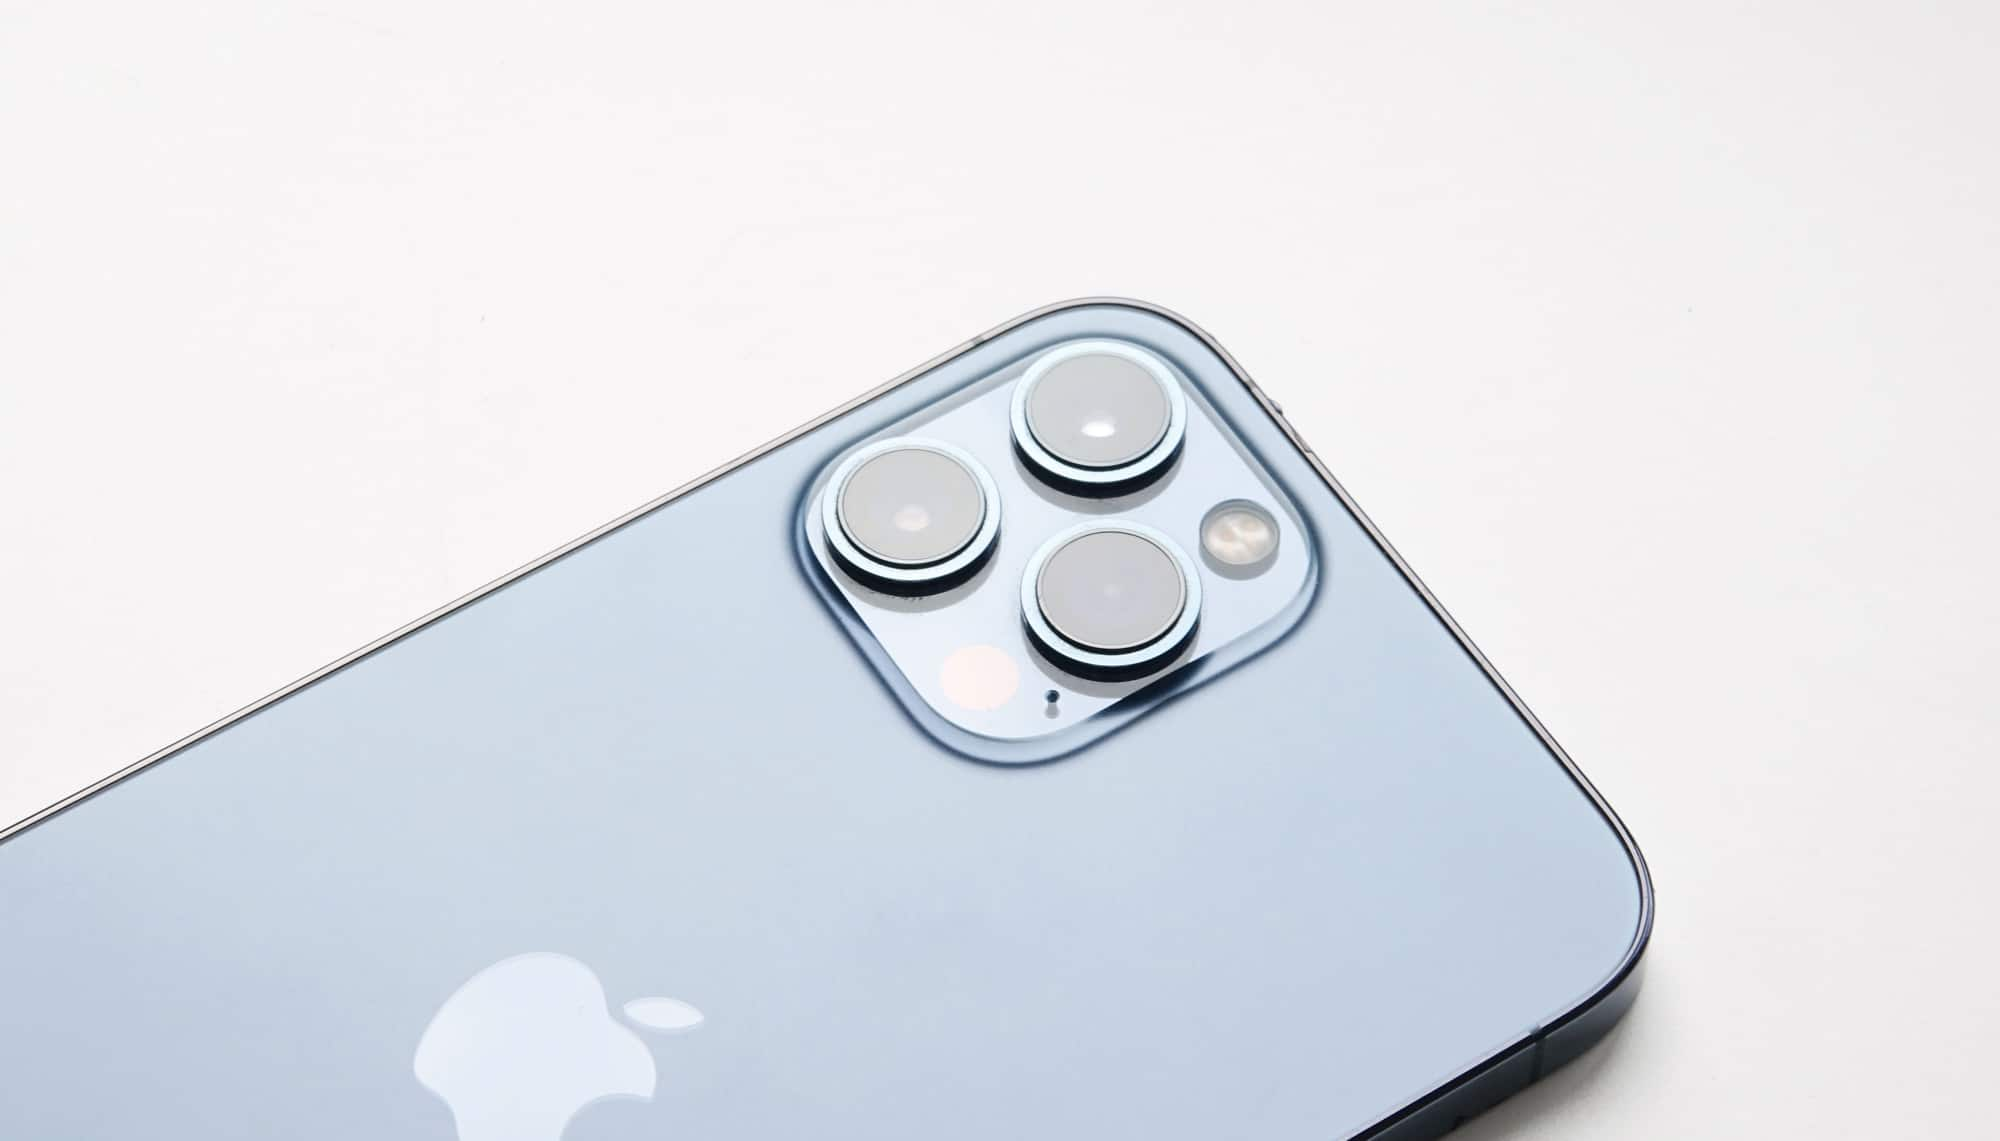 Apple iPhone 12 Pro Max cameras